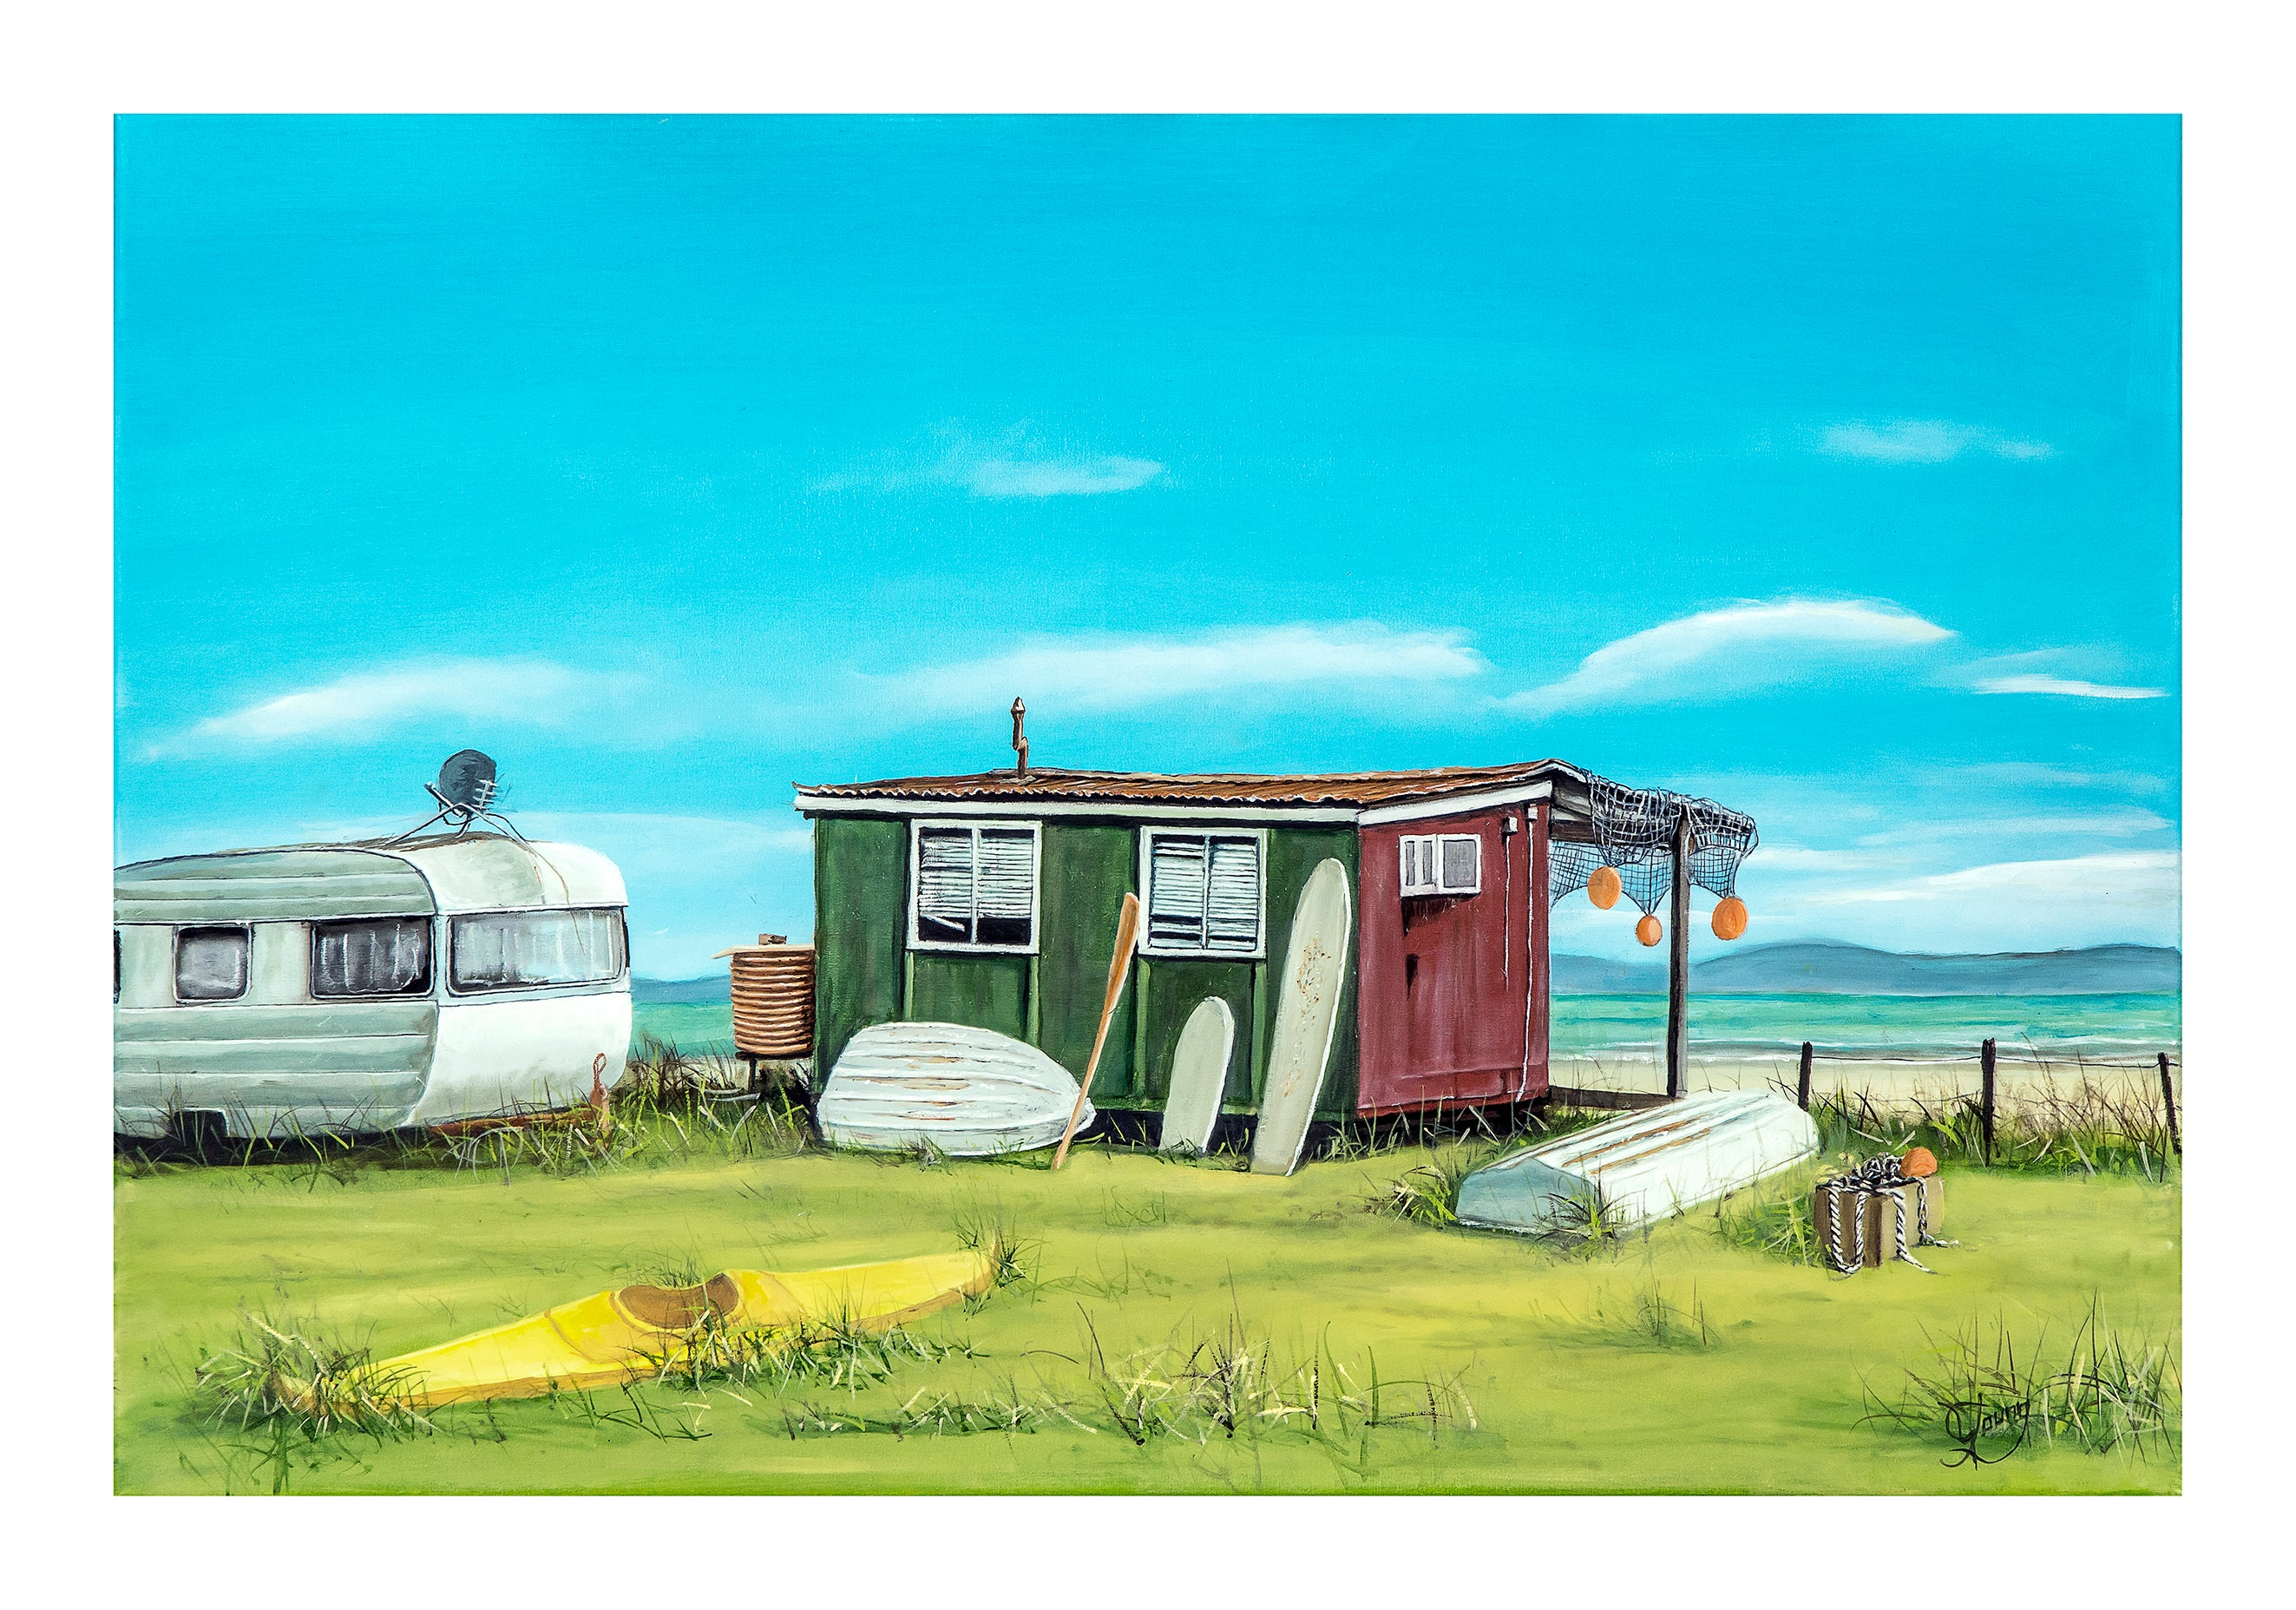 Firth Retreat - grahamyoungartist.com - Original Artwork and Prints by New Zealand Artist Graham Young